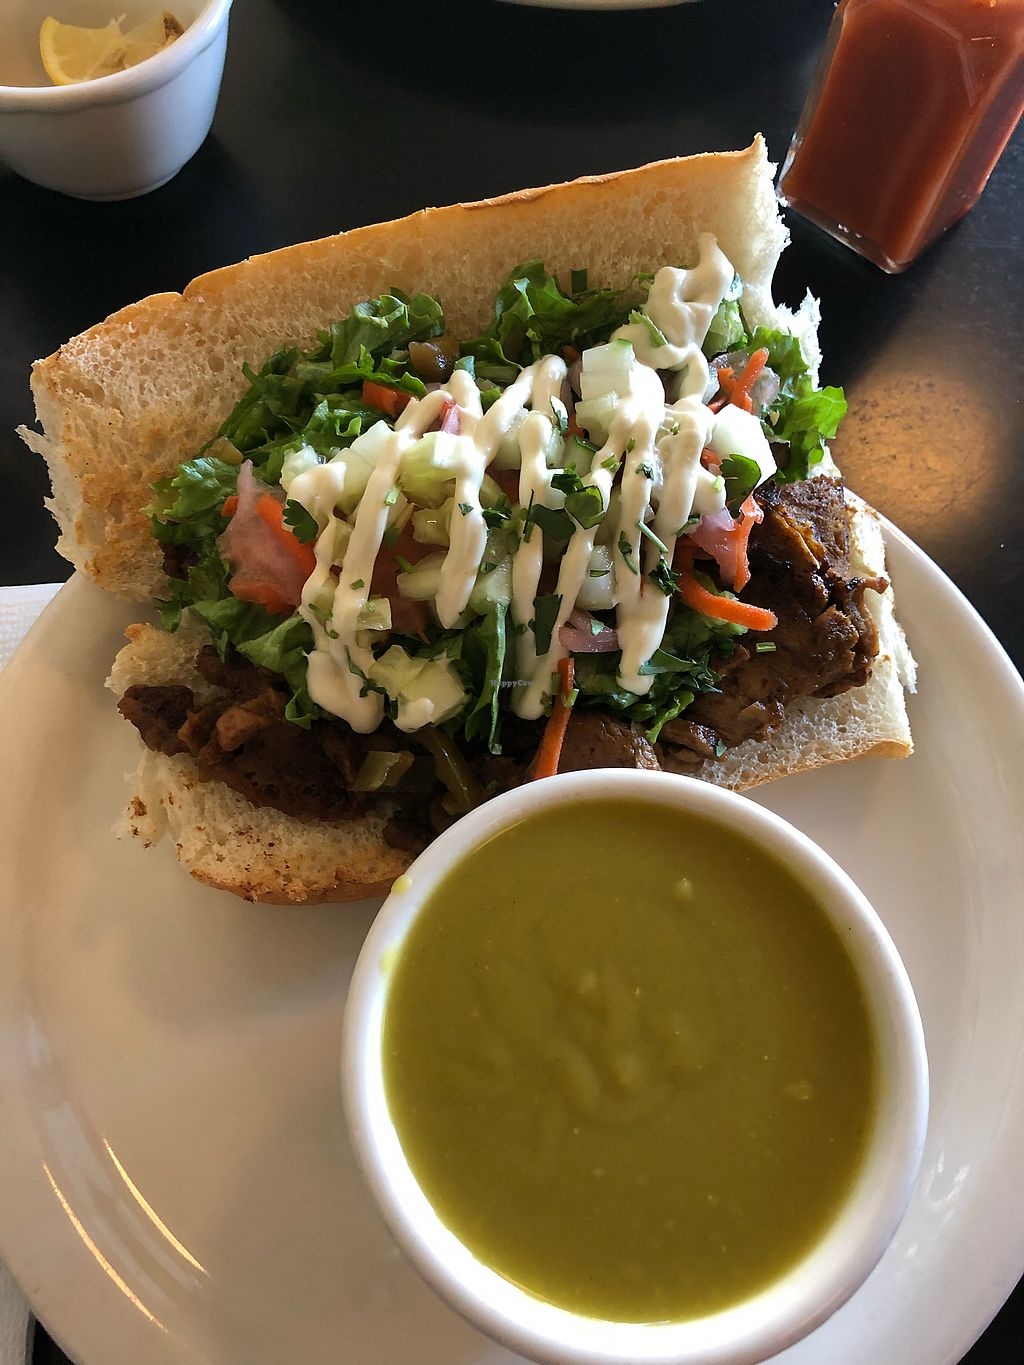 """Photo of The Grit  by <a href=""""/members/profile/KerryElise"""">KerryElise</a> <br/>Bahn Mi and Split Pea Soup <br/> March 14, 2018  - <a href='/contact/abuse/image/1868/370712'>Report</a>"""